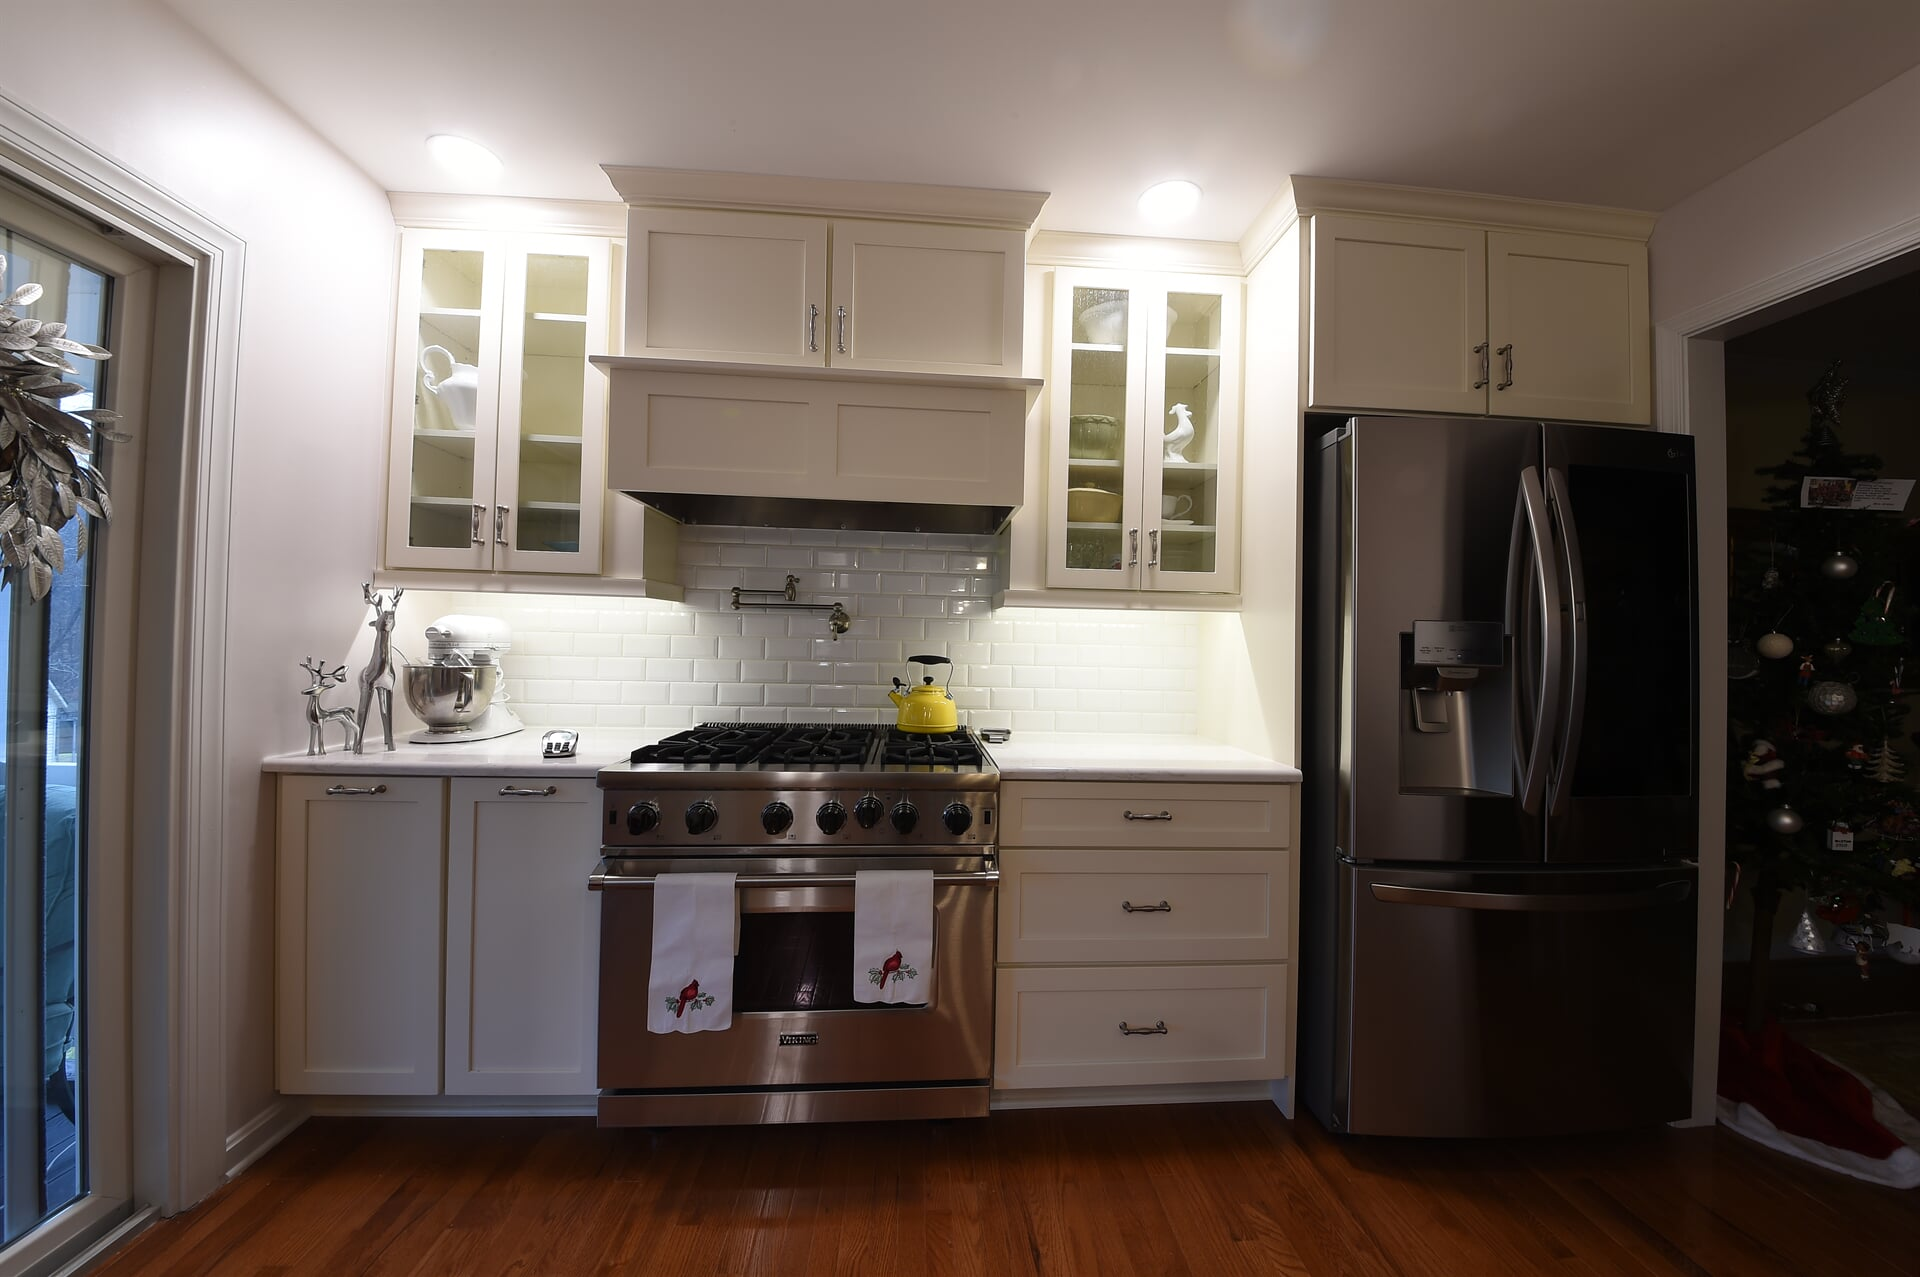 Kitchen remodeling in St Mary's City, MD by Southern Maryland Kitchen Bath Floors & Design